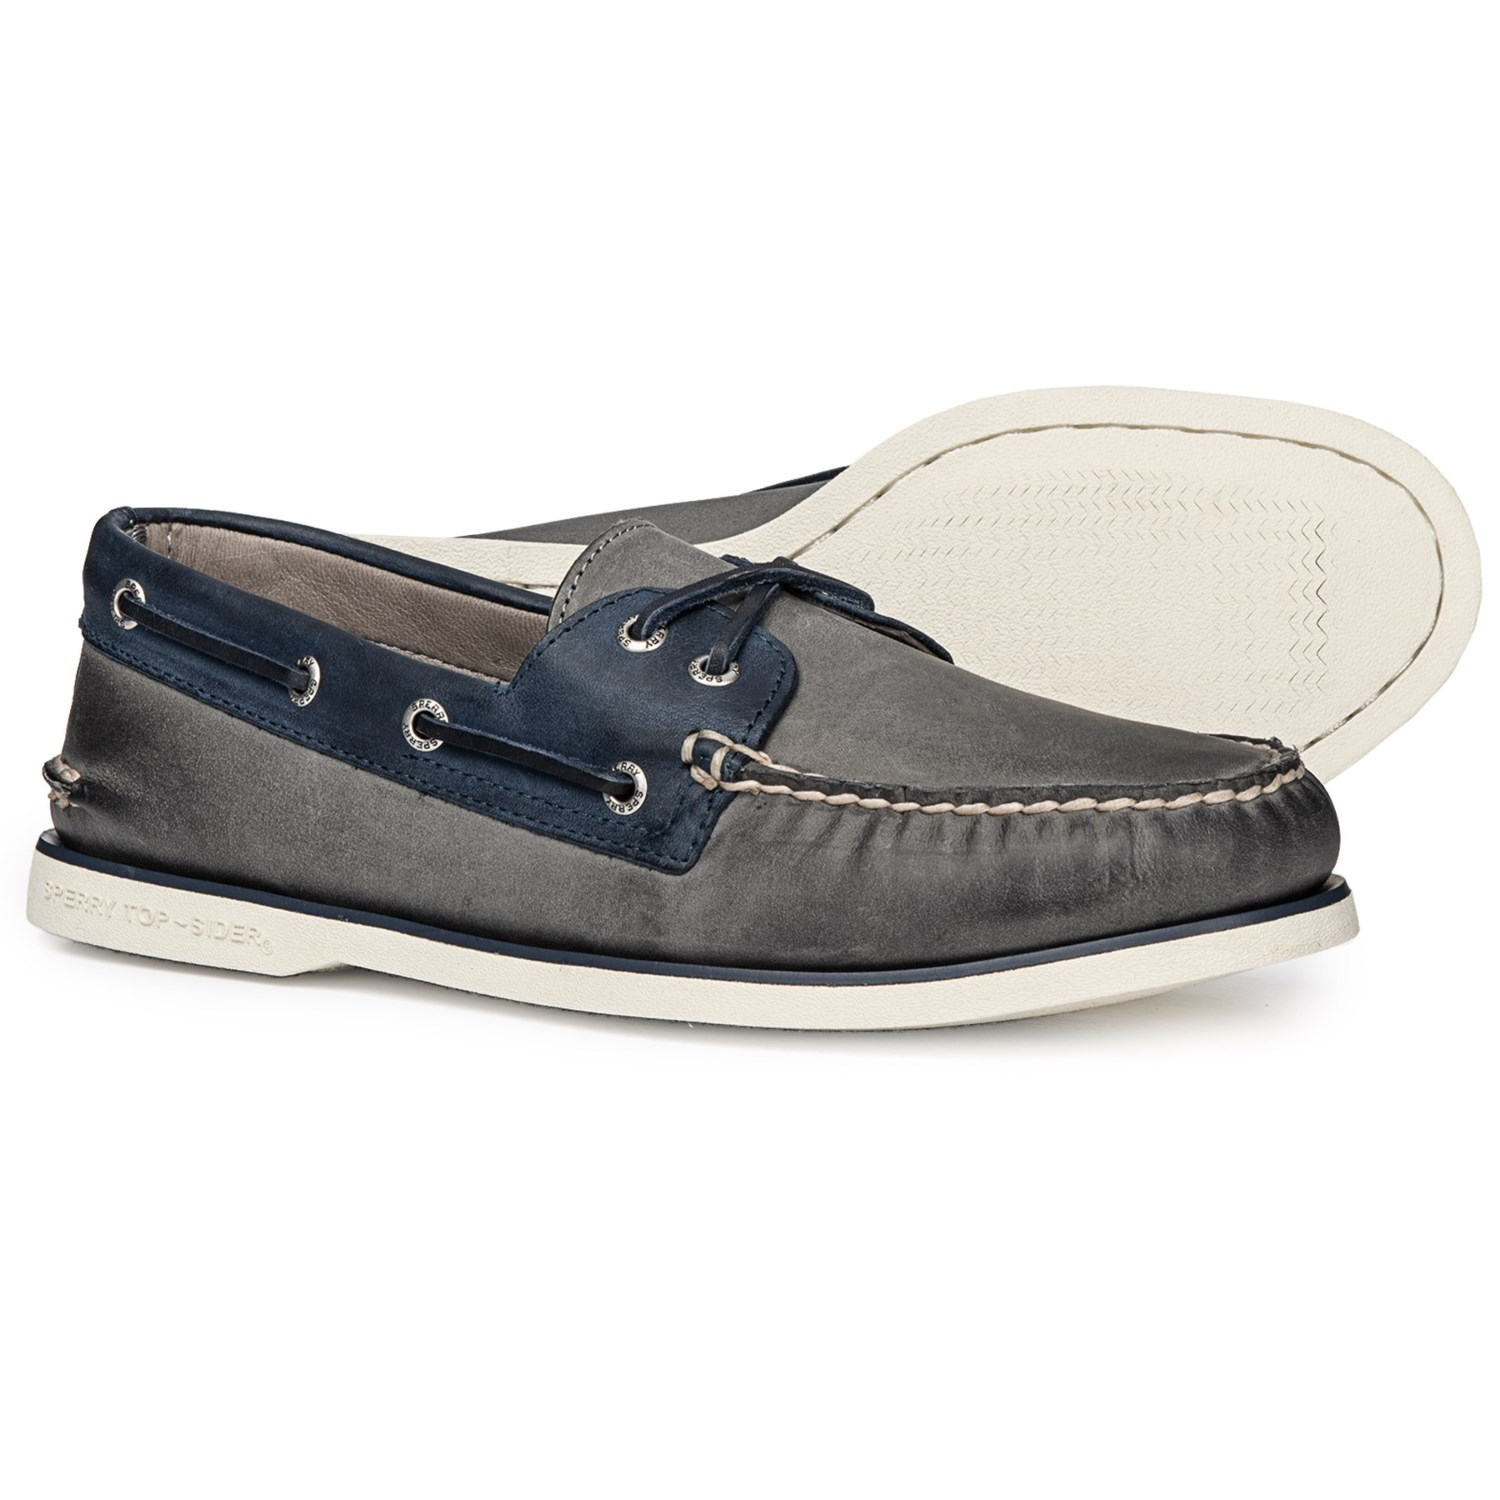 892f5573b77e9 Sperry Gold Cup Authentic Original 2-Eye Boat Shoe (For Men)